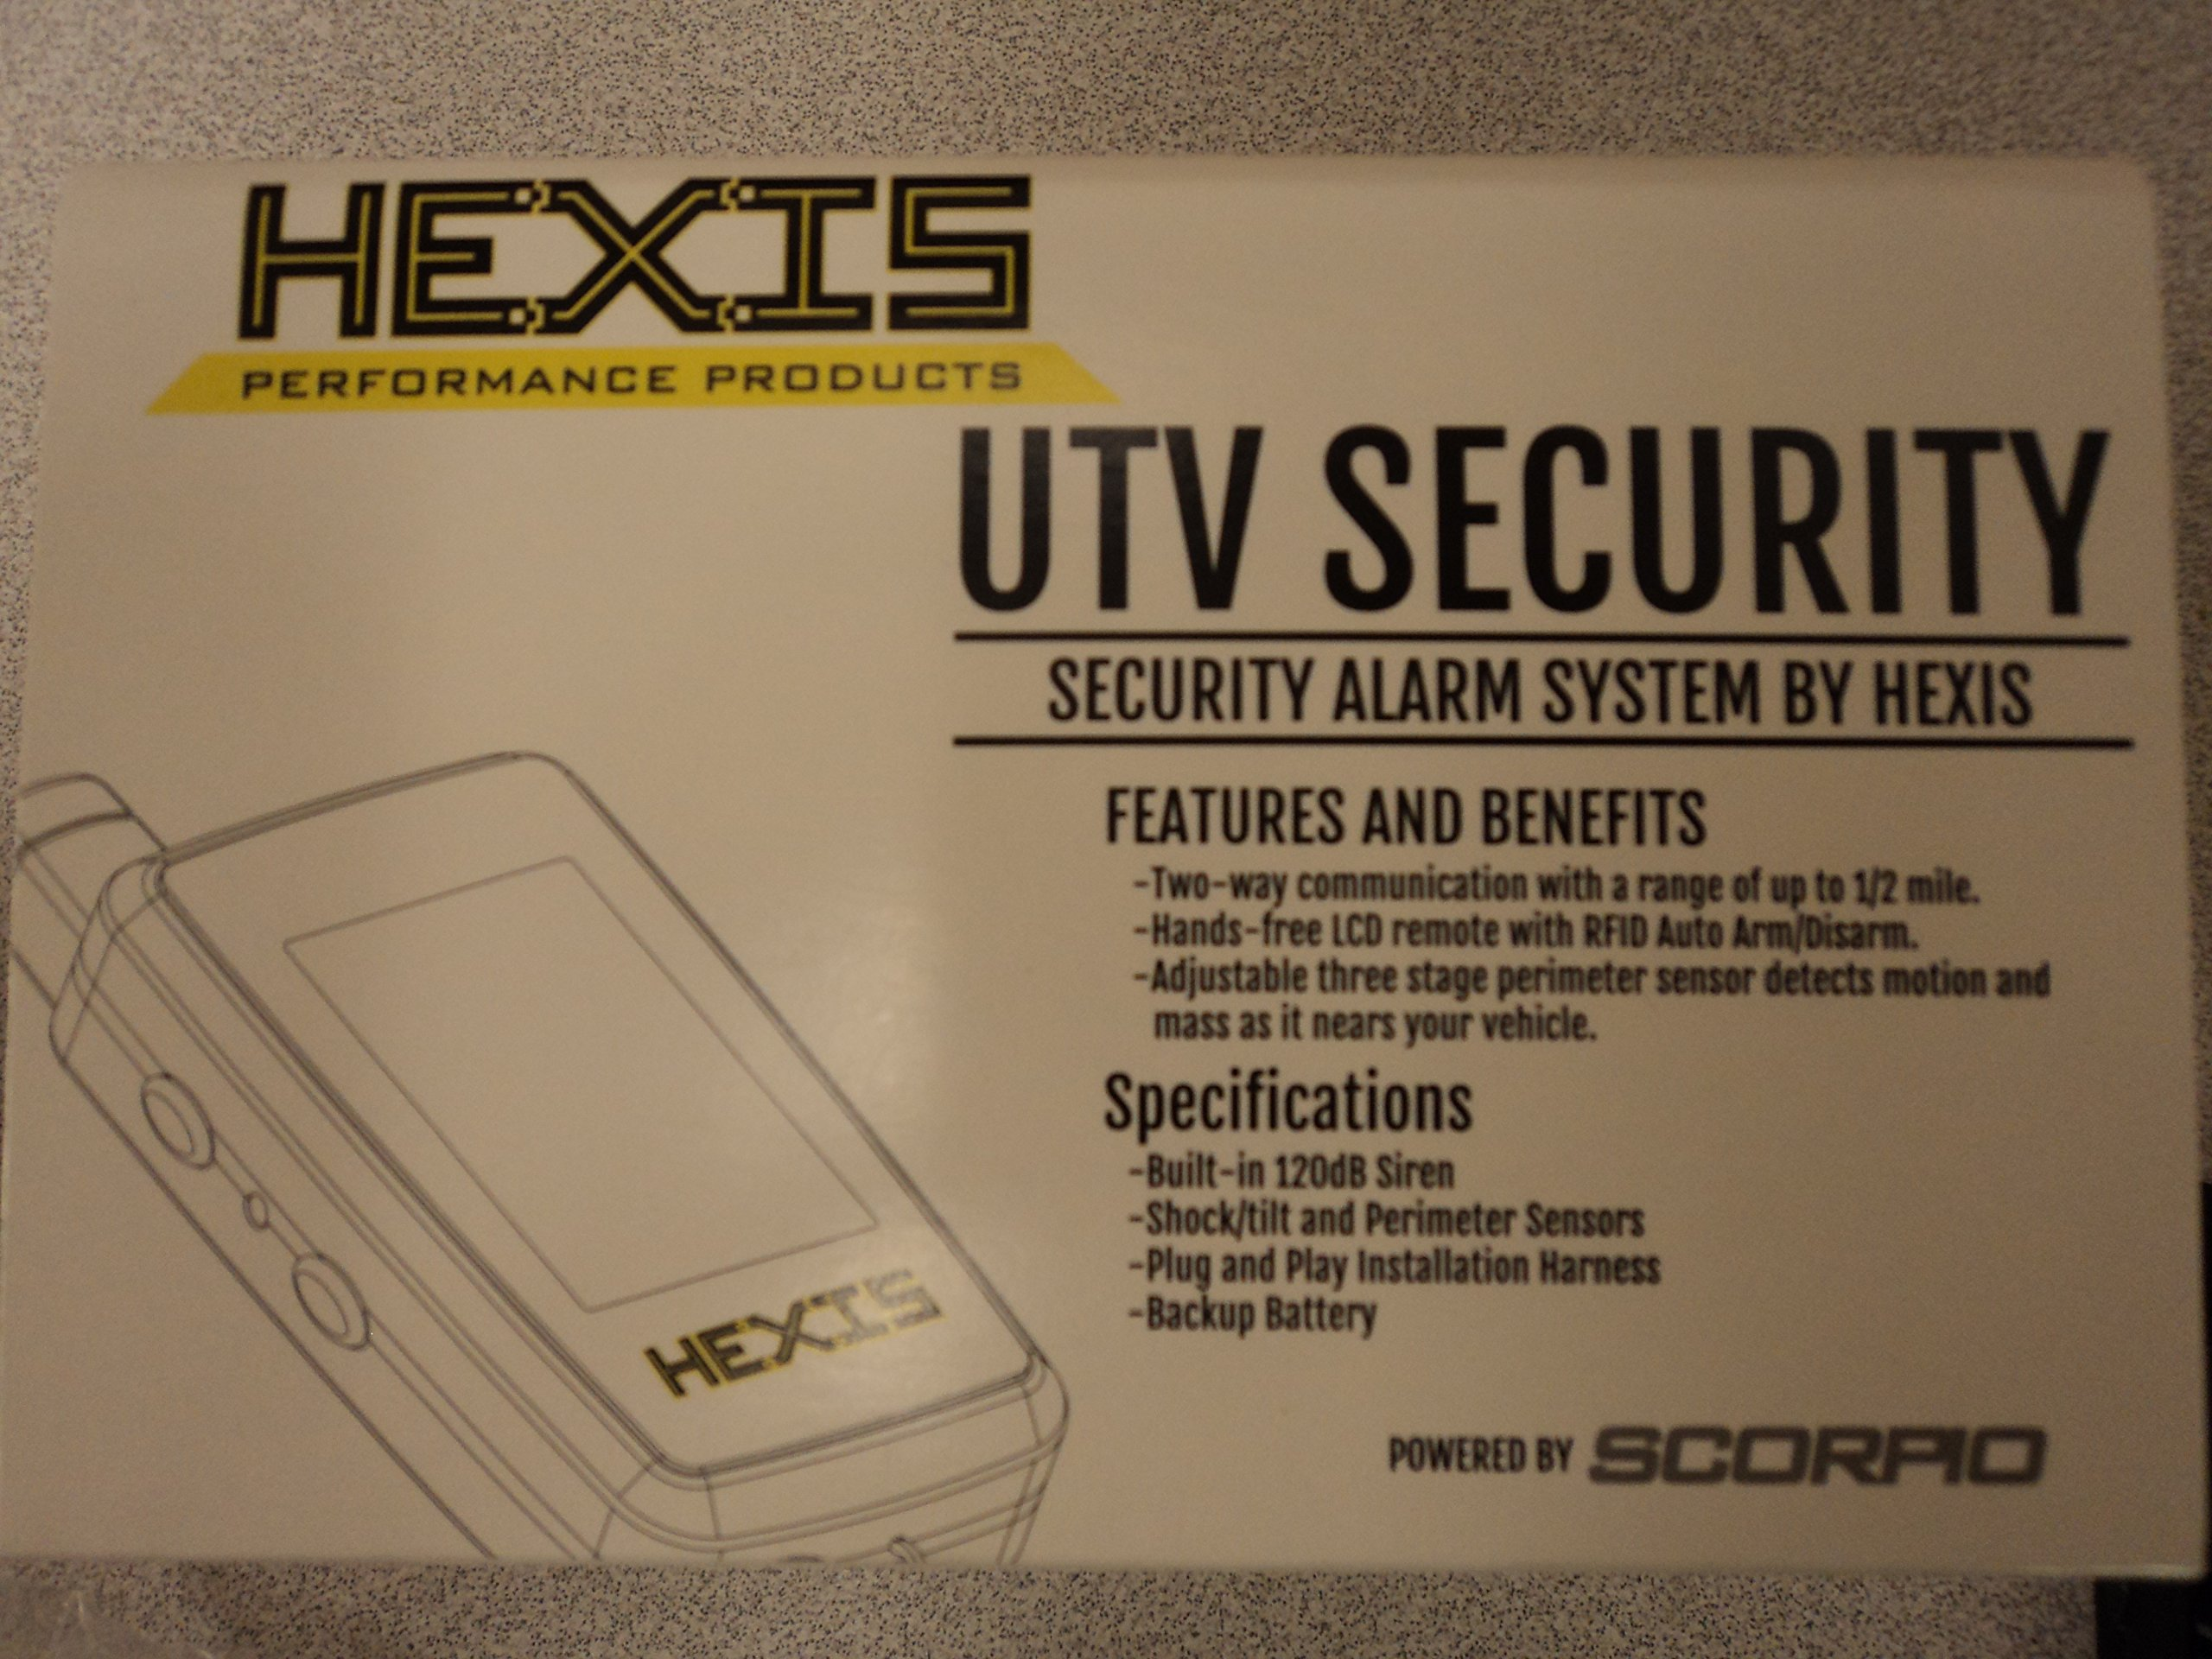 HEXIS CAN AM X3 UTV SECURITY ALARM SYSTEM by HEXIS BY SCORPION (Image #5)